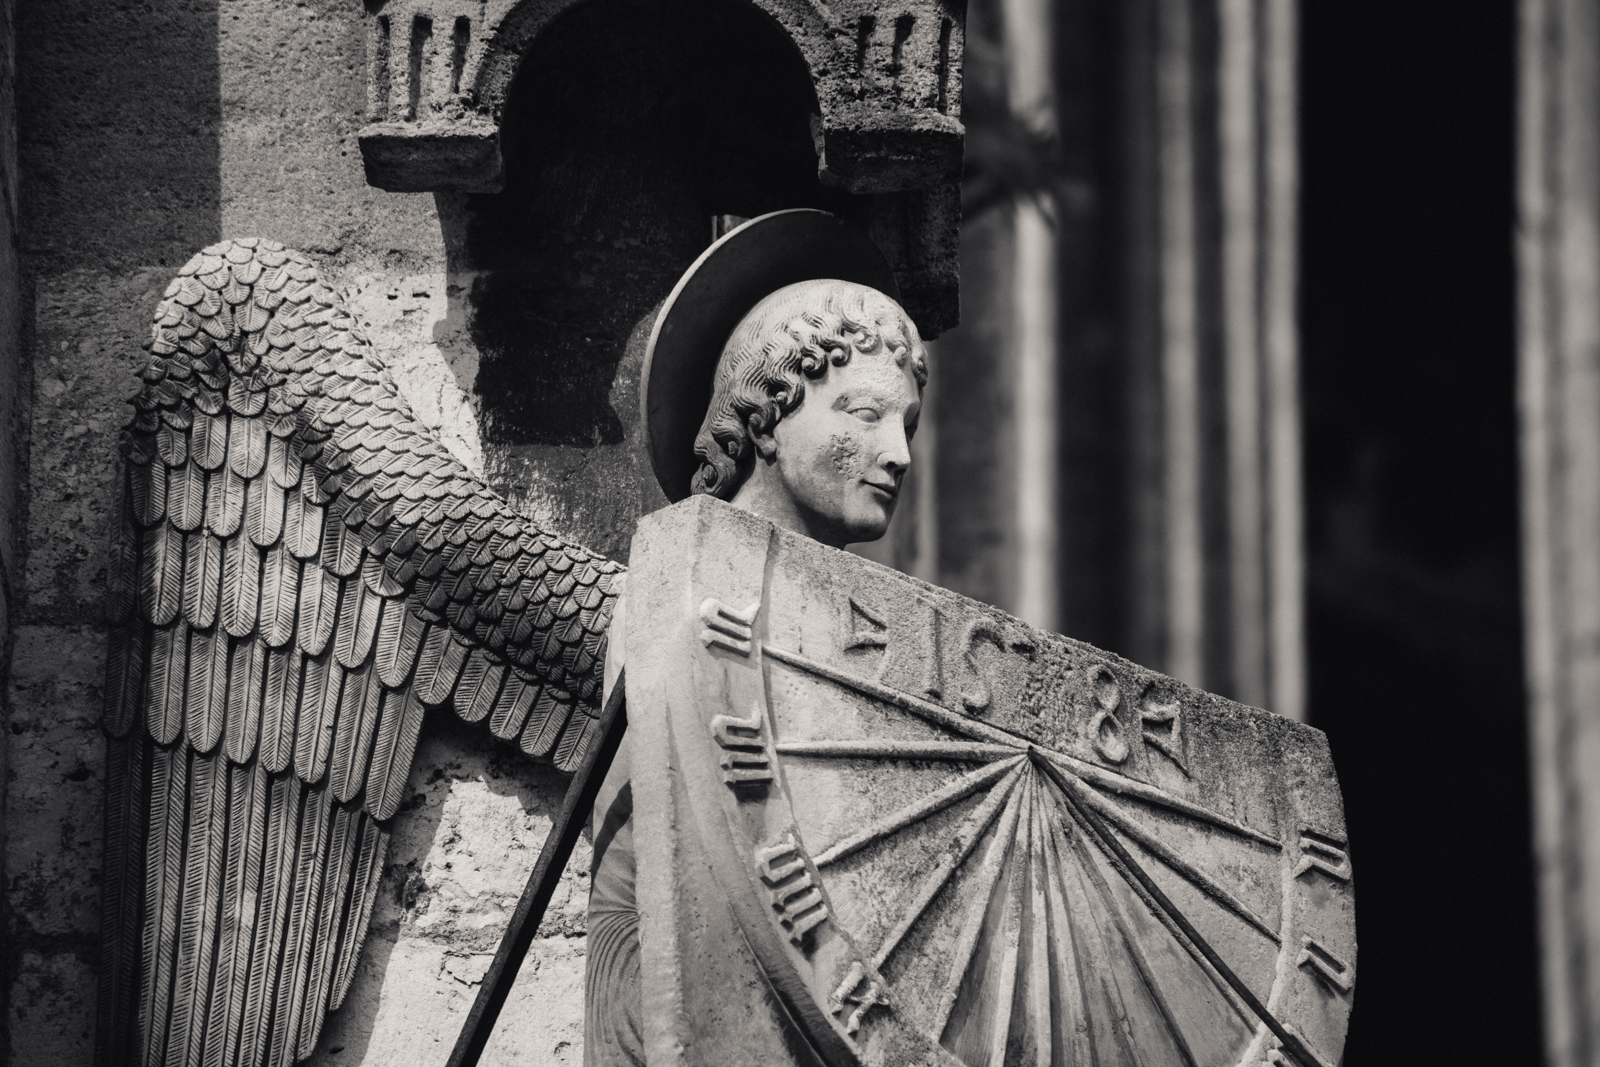 Angel with sundial, Cathédrale de Chartres, Chartres